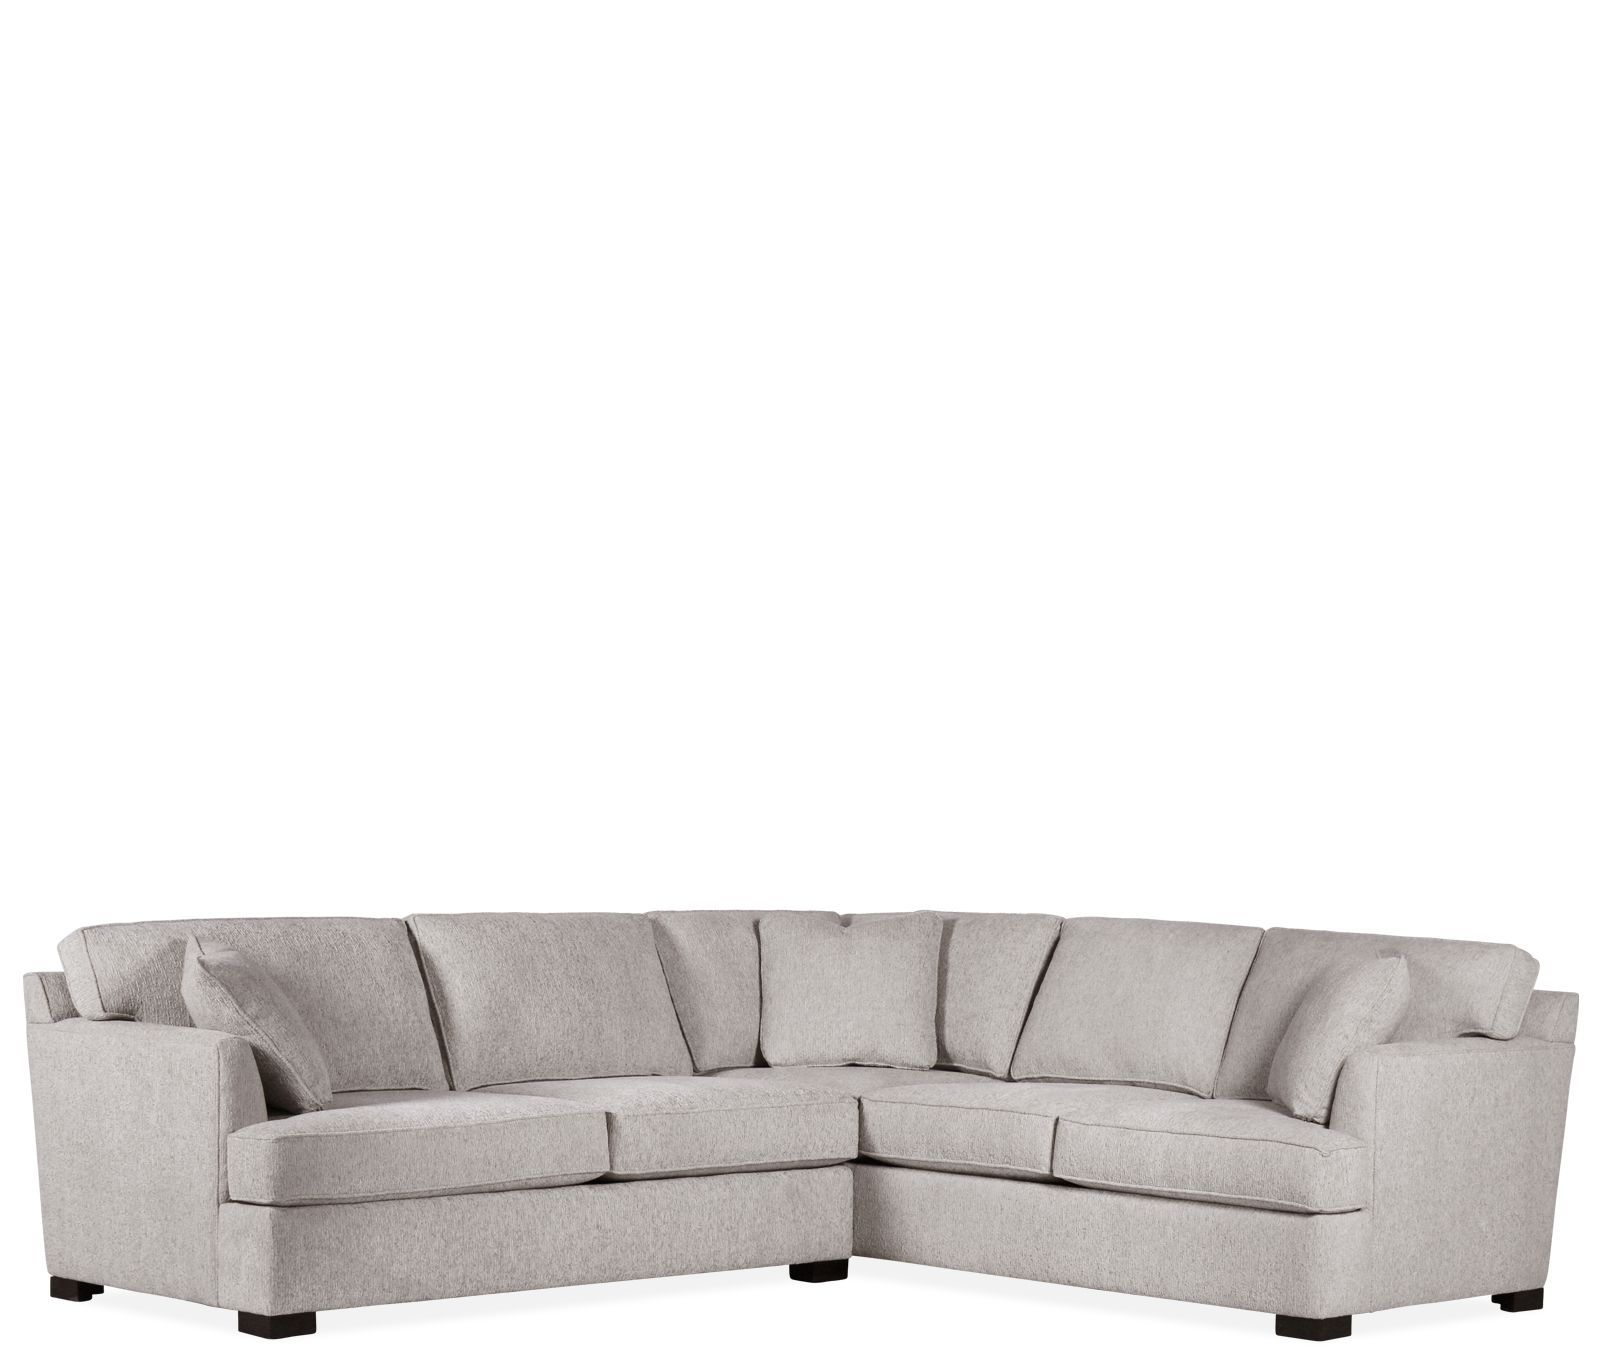 Bristol 2 Piece Rhf Sofa Sectional With Images Sectional Sofa